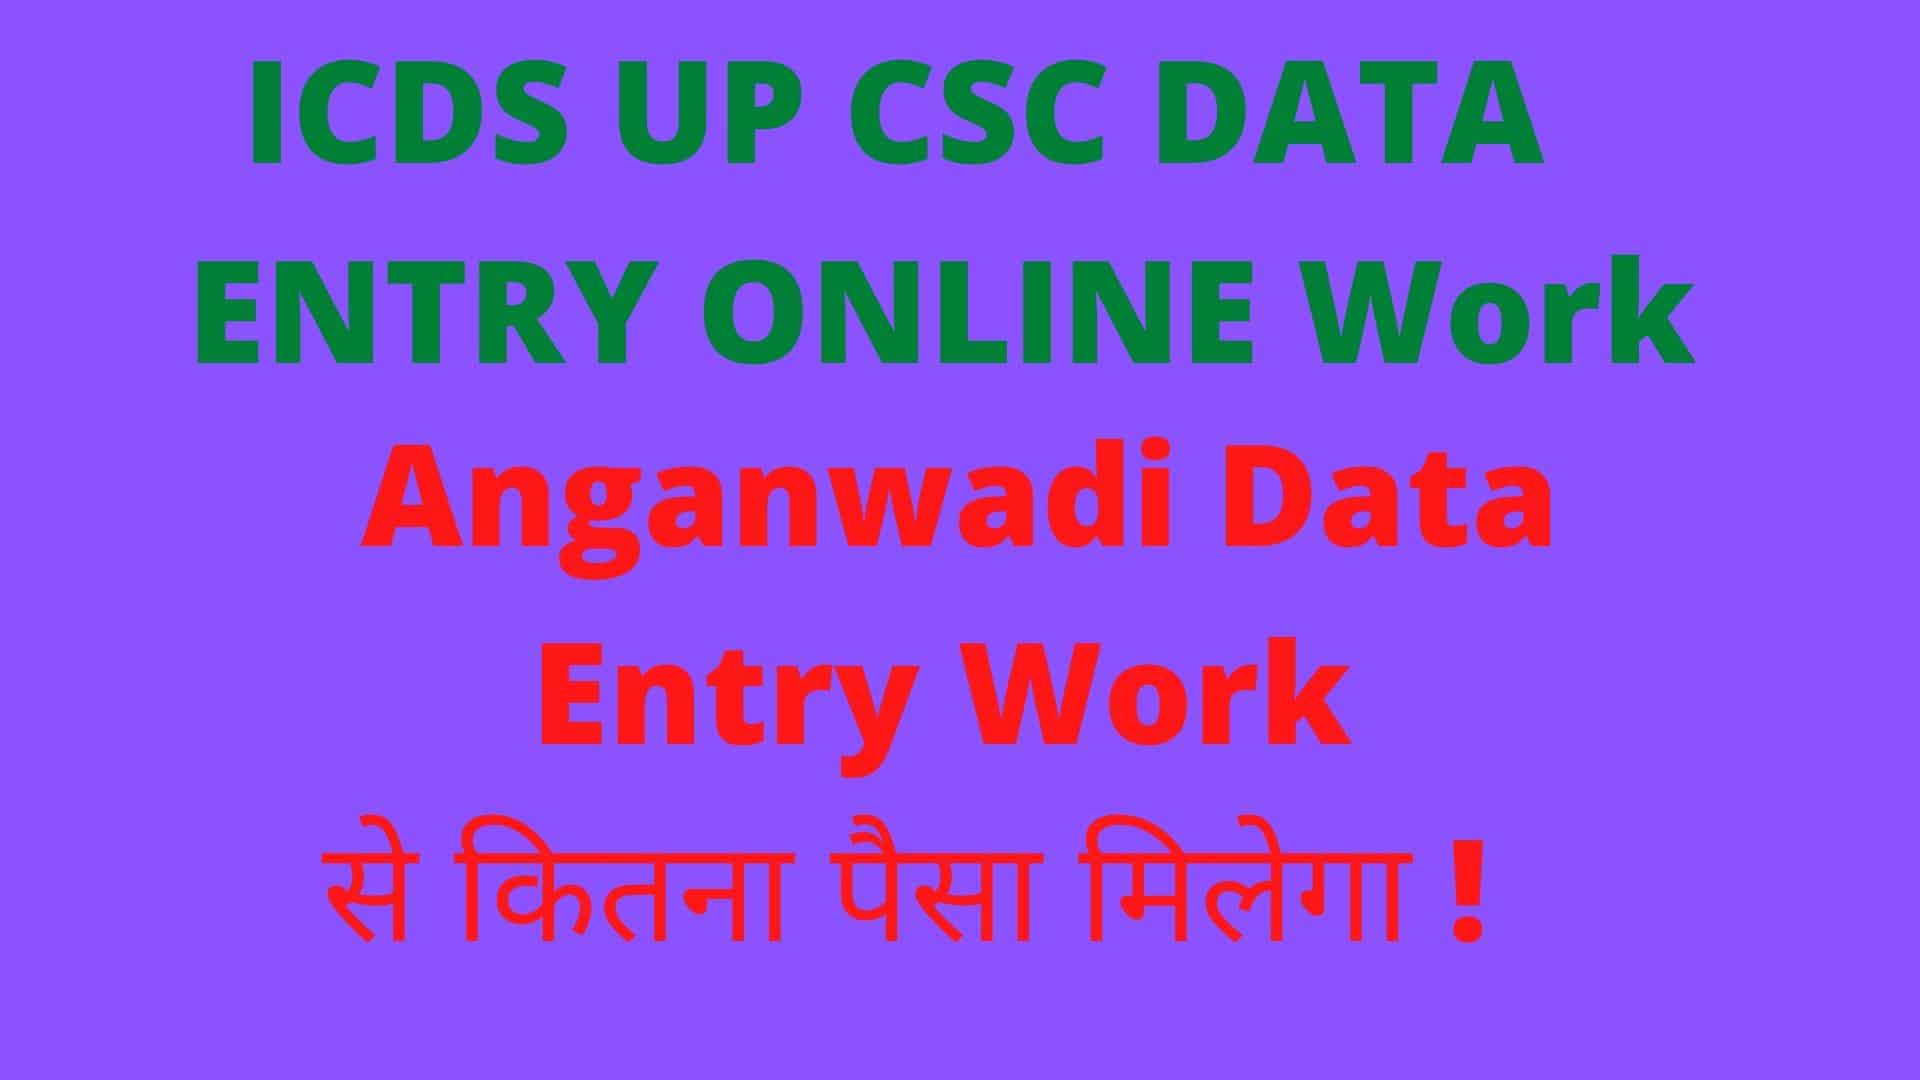 ICDS UP CSC DATA ENTRY ONLINE